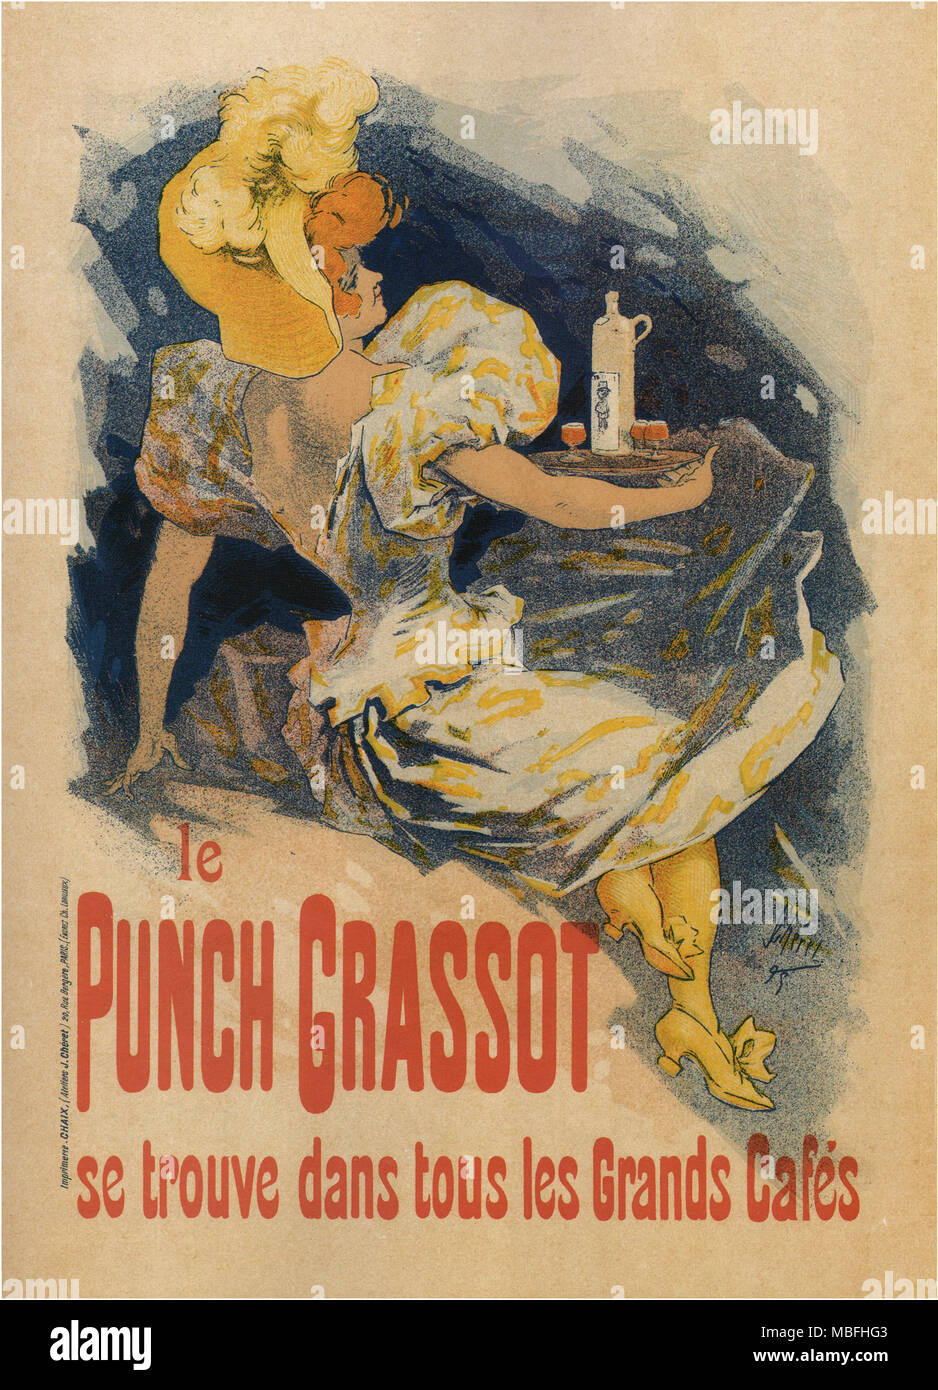 Le Punch Grassot - Stock Image